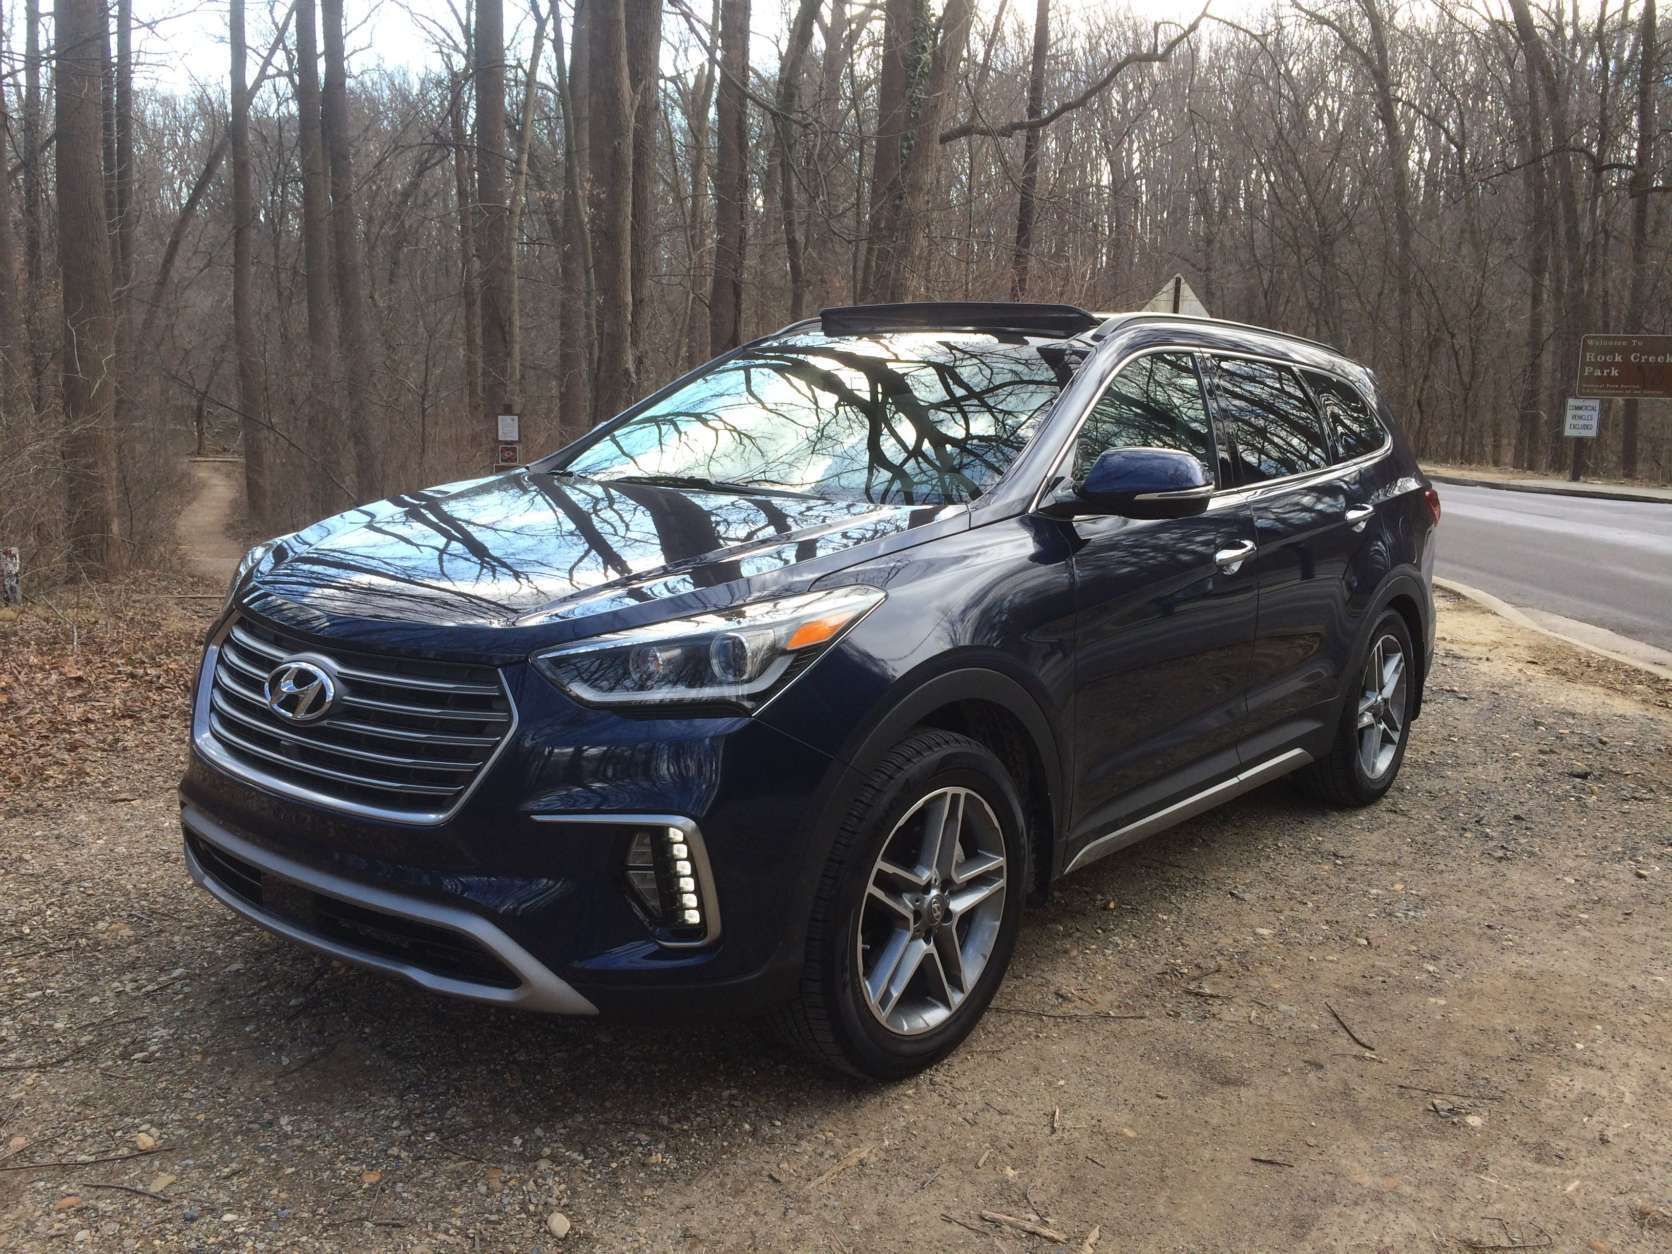 WTOP car guy Mike Parris says the Hyundai Santa Fe Limited Ultimate is a value buy with all the luxury for a seven-seat crossover. (WTOP/Mike Parris)